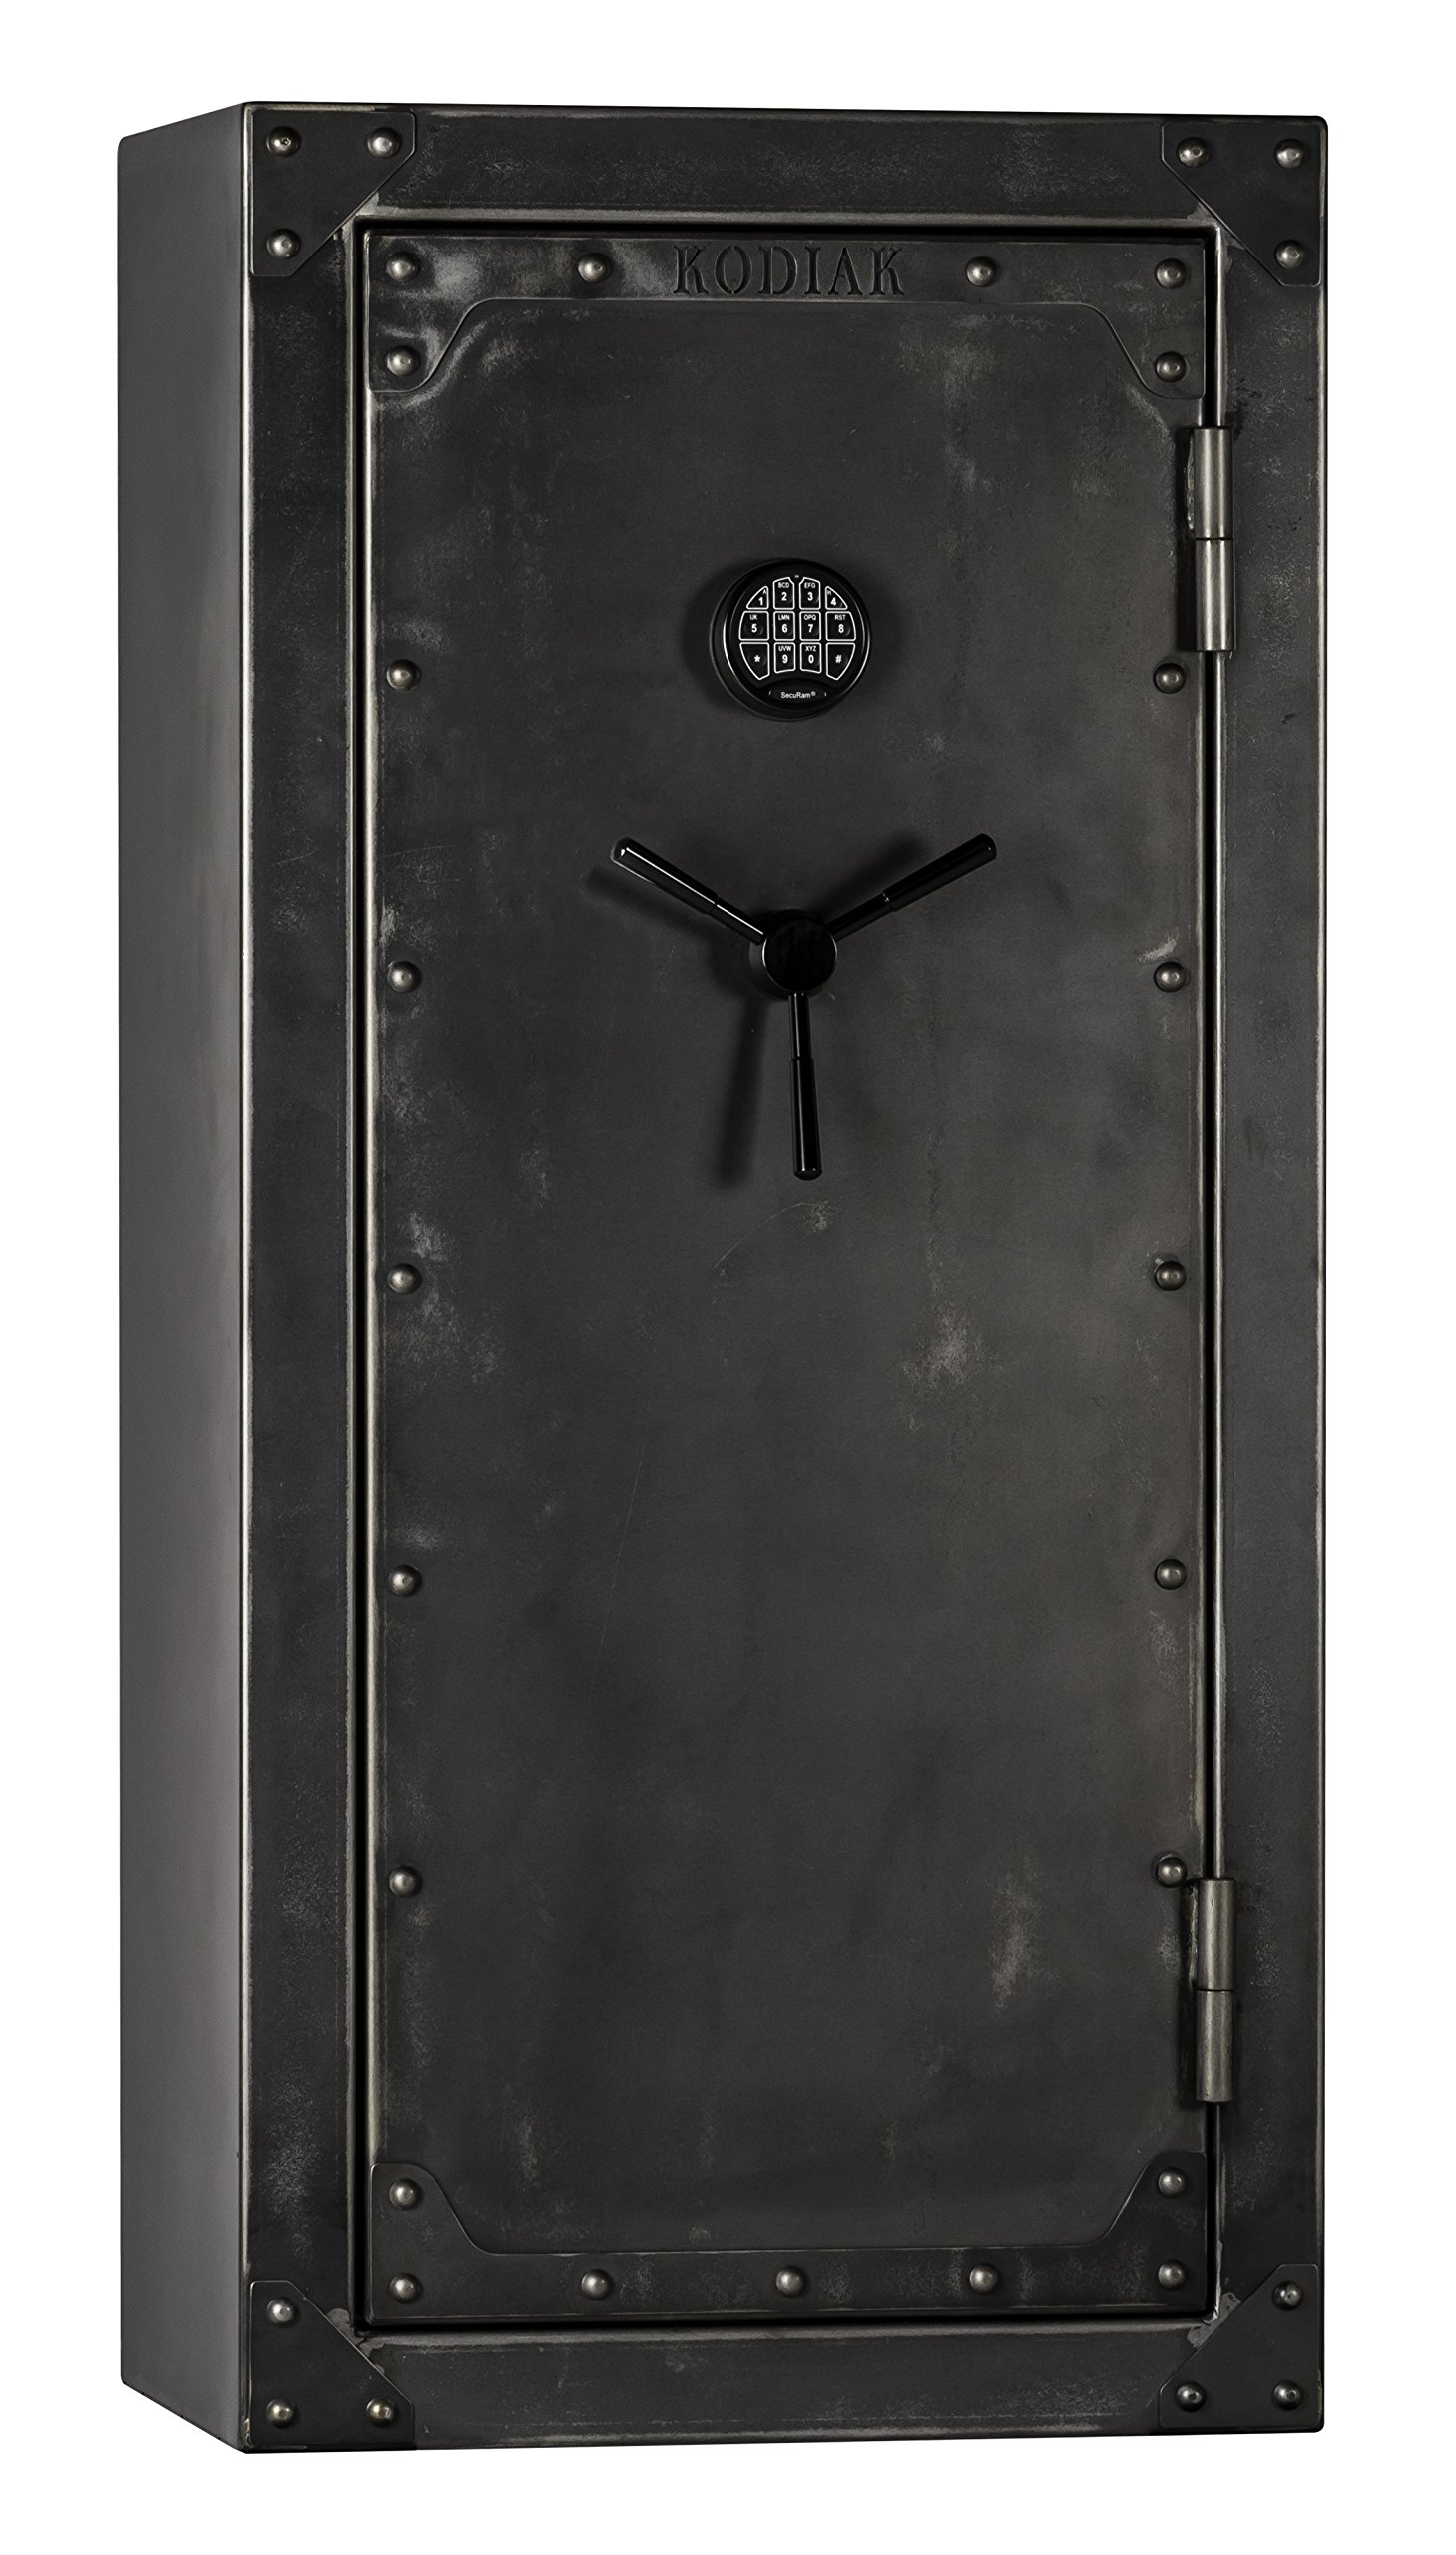 Kodiak Strong Box KSB5928EX-SO Gun Safe by Rhino Metals, 485 lbs, 60 Minute Fire Protection, Patented Swing Out Gun Rack, Electronic Lock and Bonus Deluxe Door Organizer by Kodiak